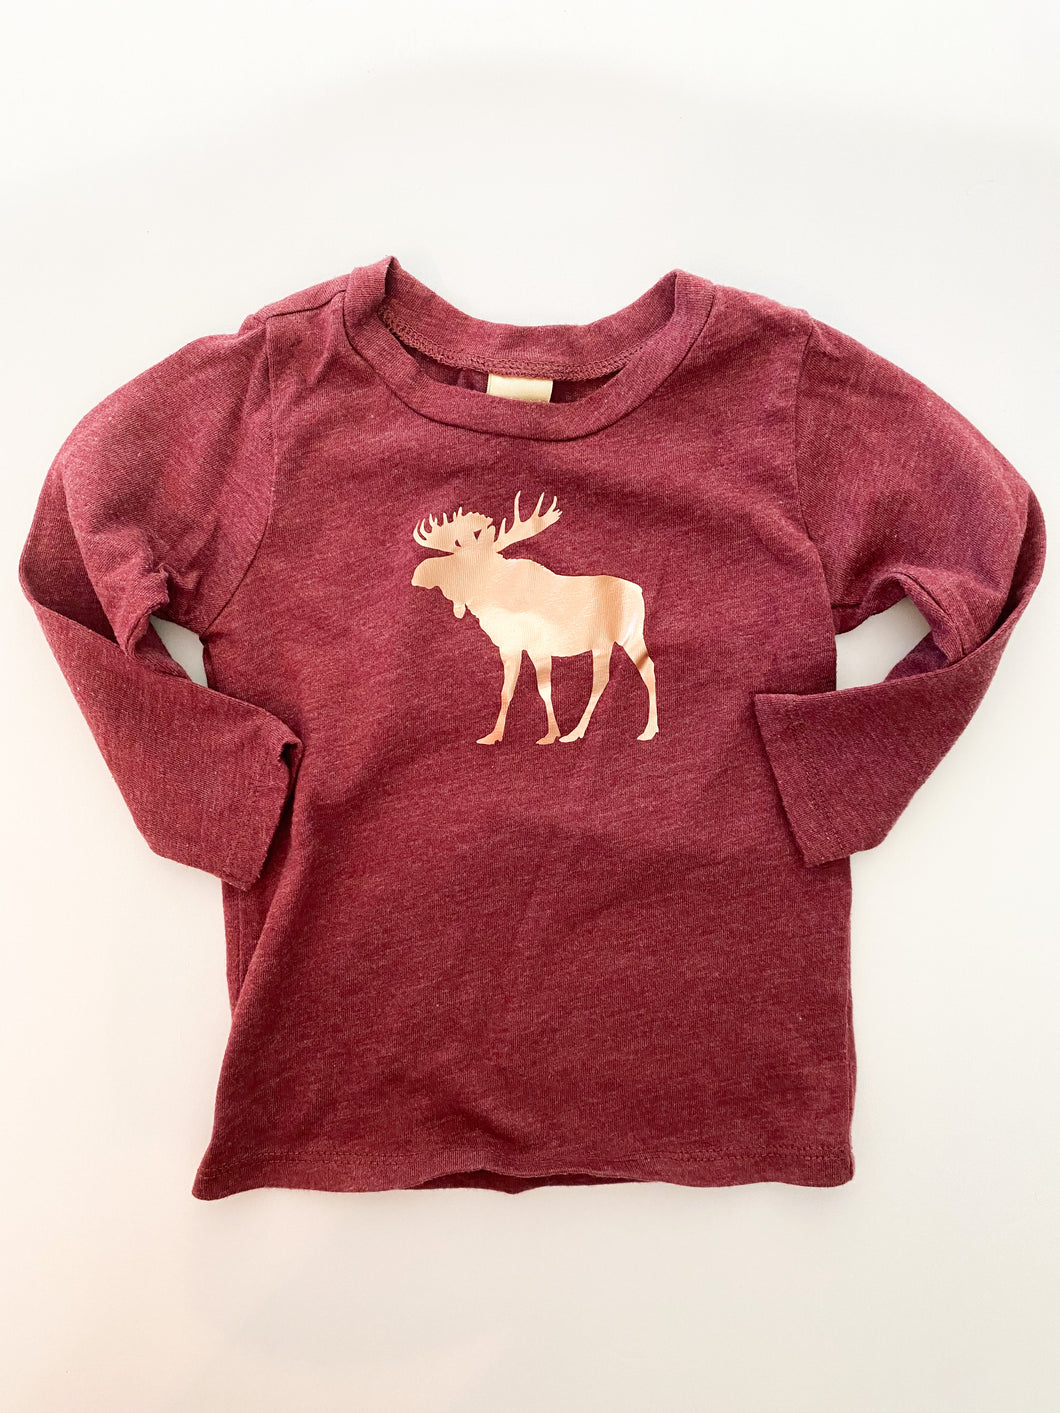 6m Love of little Rose Gold Moose on Maroon ( like new )